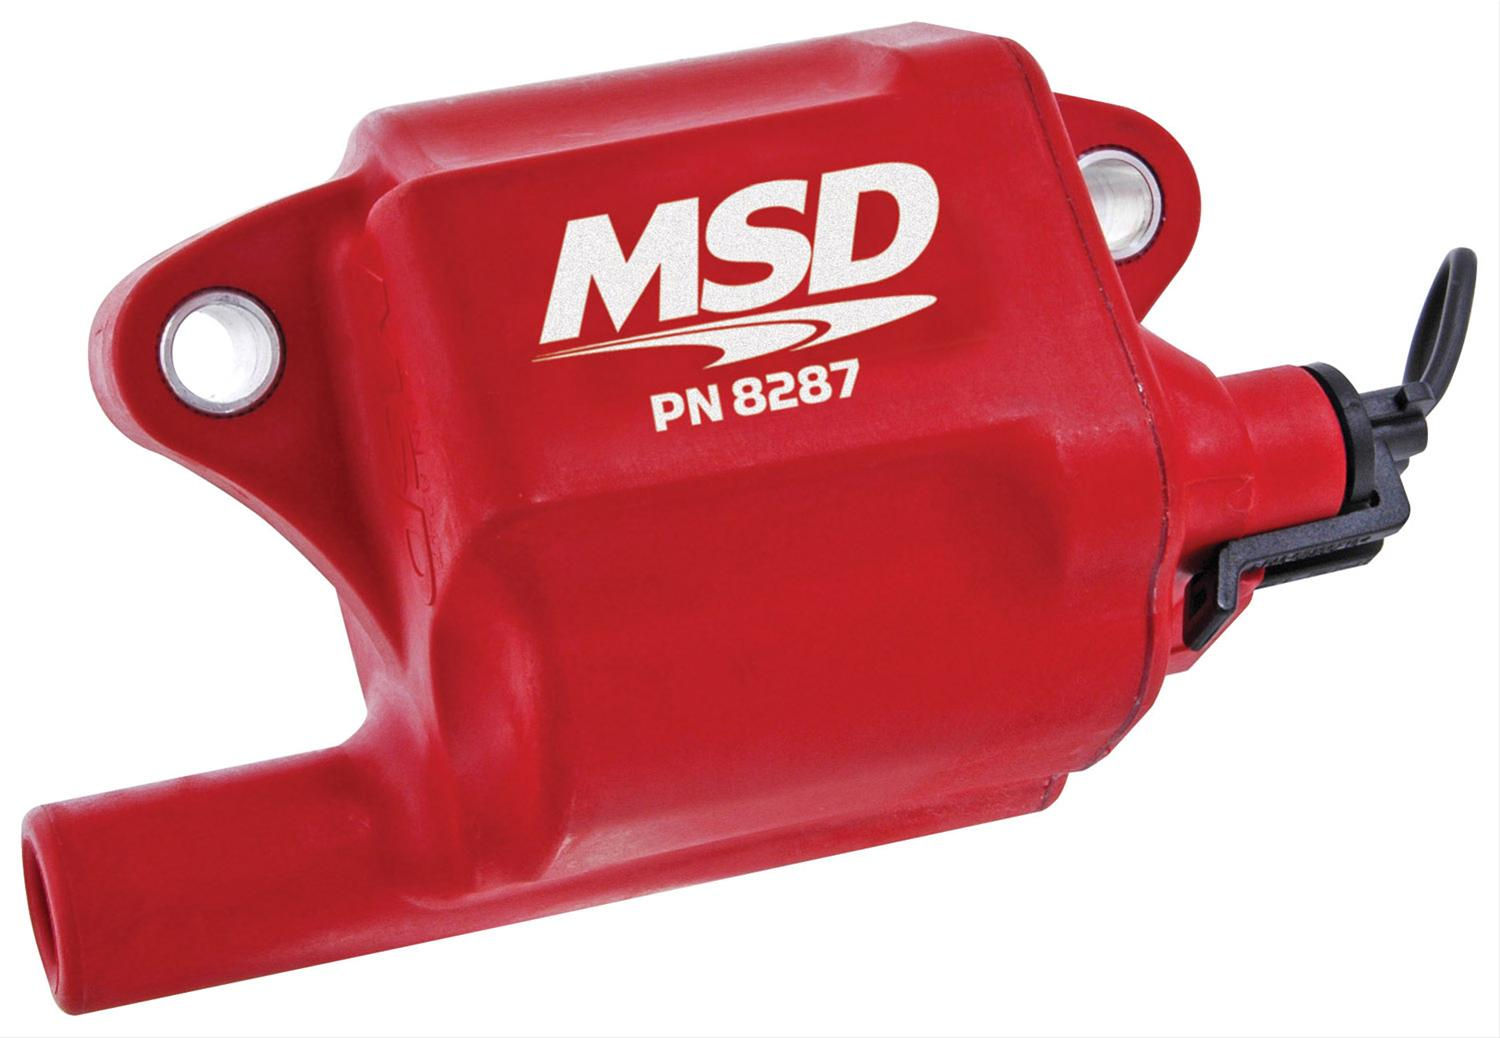 msd-8287_xl.jpg - LS2/LS7 MSD Multiple Spark Coil Kit